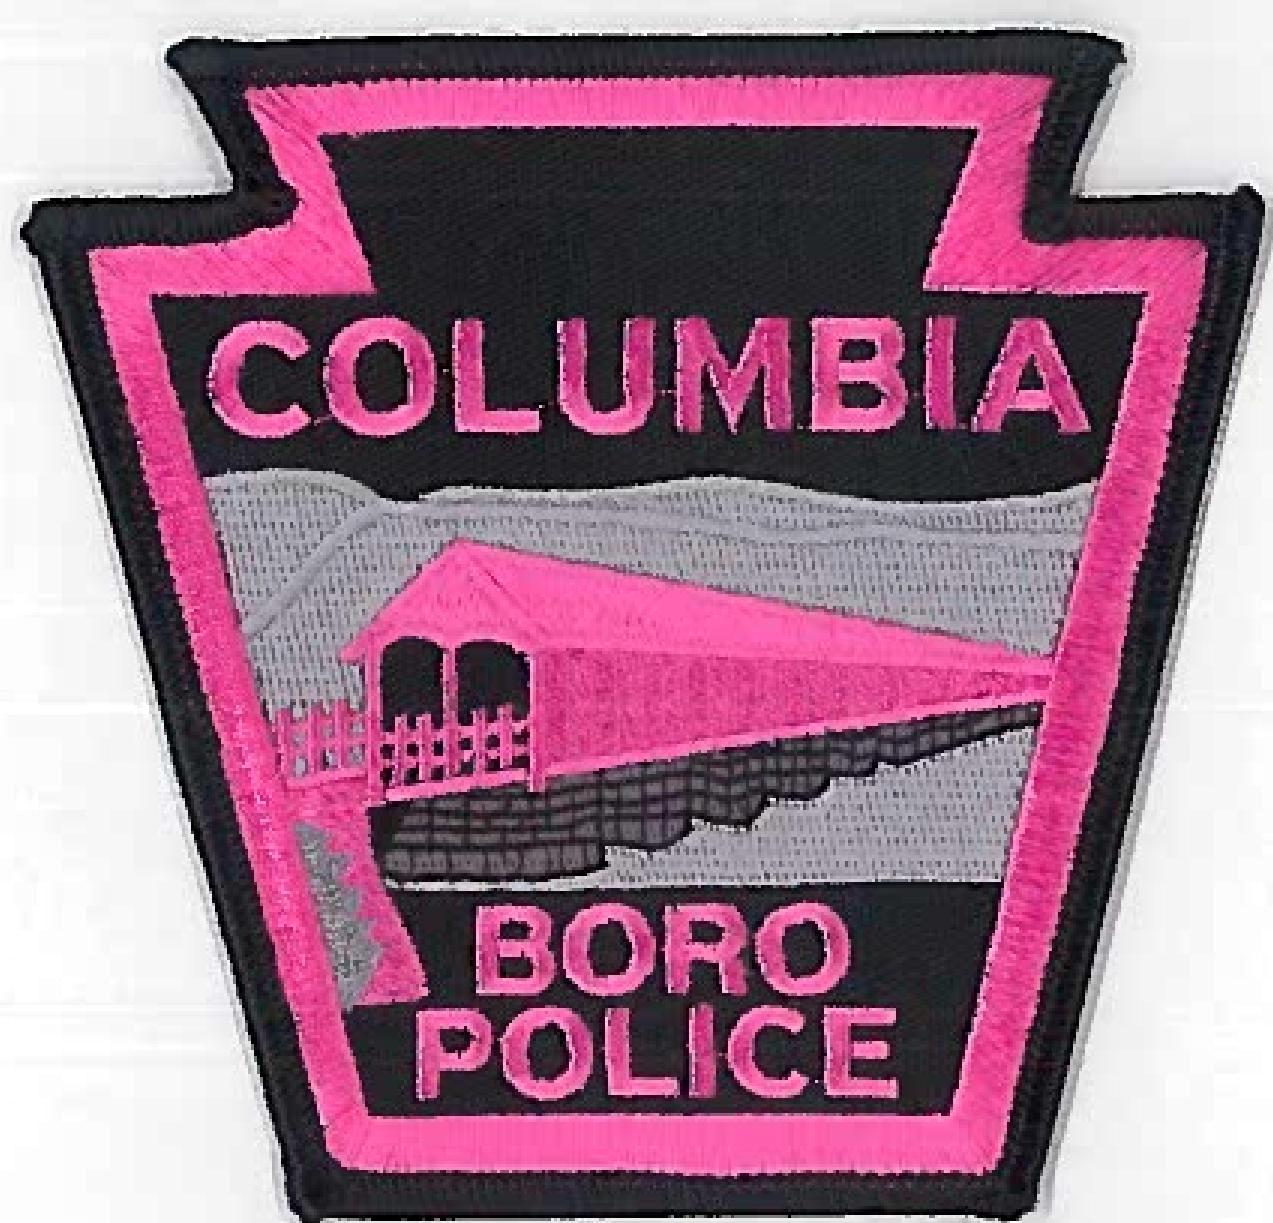 Columbia PD-page-001.jpg